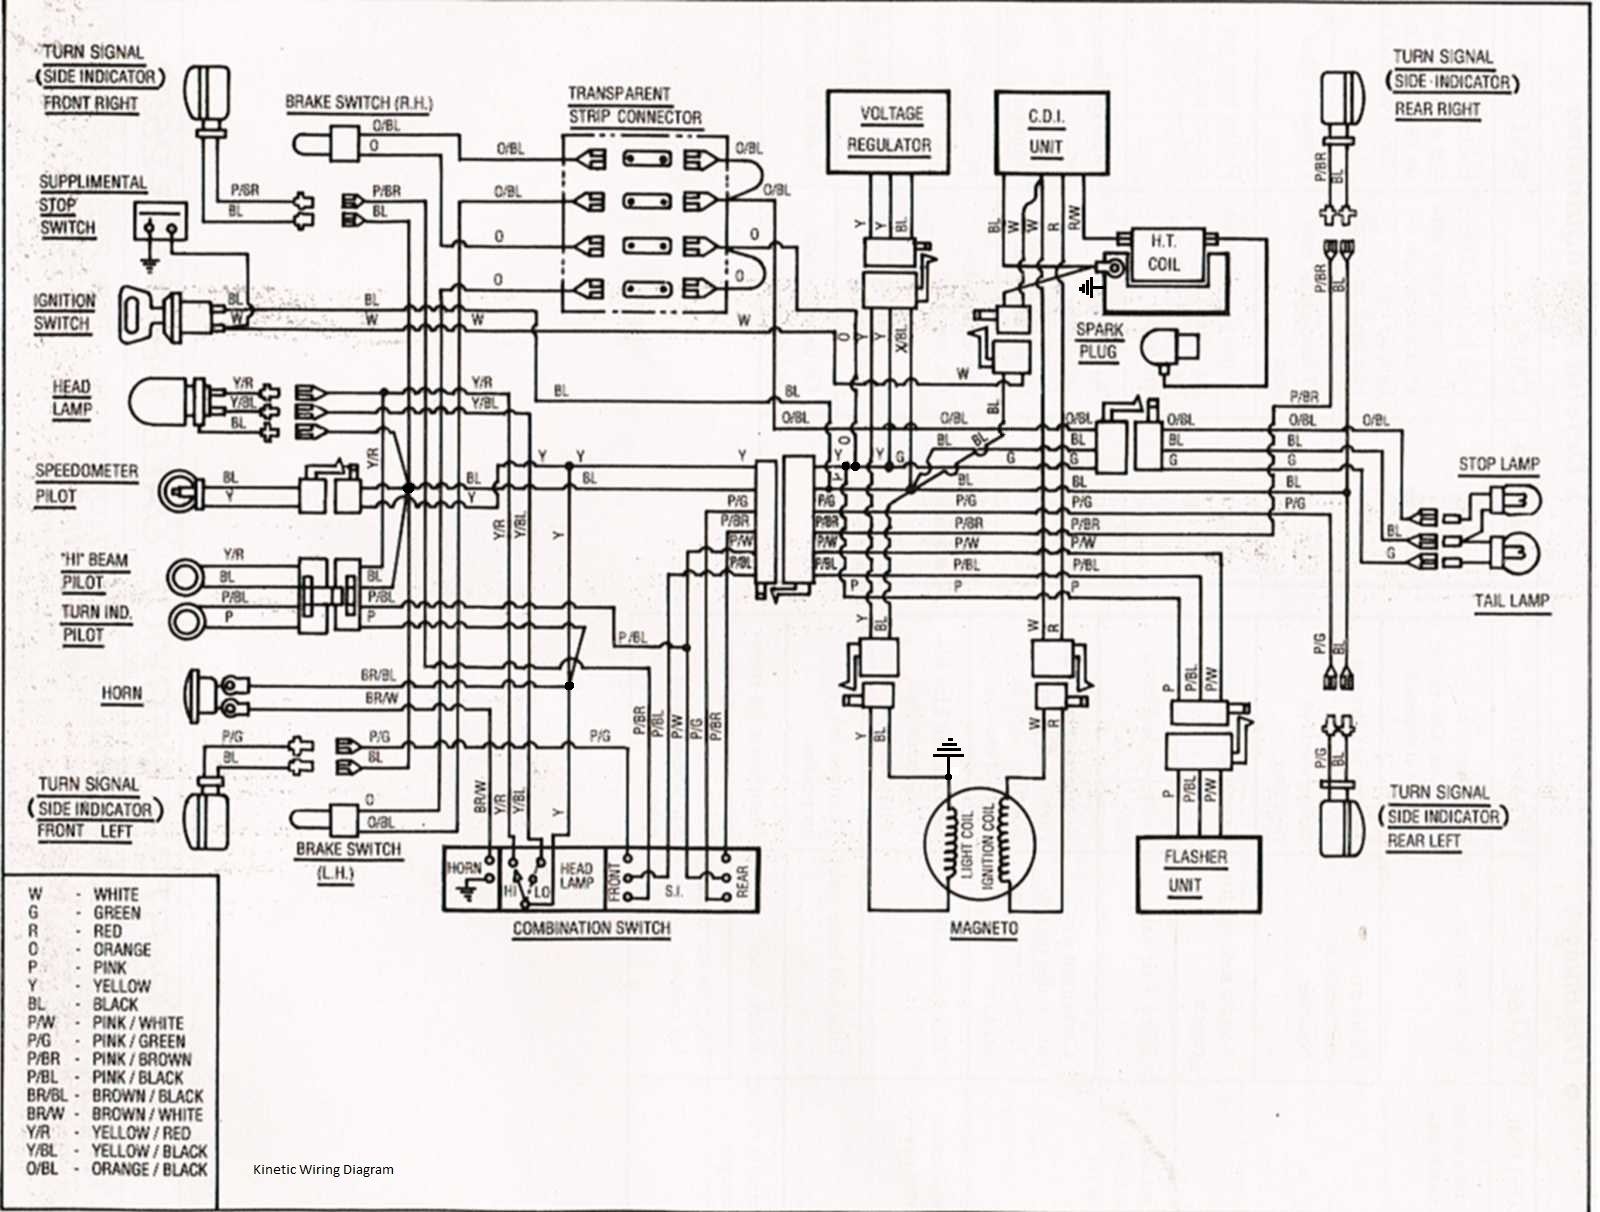 Kinetic_wiring_diagram Yamaha Grizzly Atv Wiring Diagrams on tao tao 125 atv wiring diagram, suzuki king quad 750 wiring diagram, 110 wiring diagram, yamaha yzf 600 wiring diagram, yamaha grizzly schematics, yamaha grizzly 660 headlights, suzuki vinson 500 wiring diagram, yamaha warrior 350 engine schematics, yamaha grizzly 700 custom, yamaha grizzly plow, yamaha grizzly windshield, polaris xplorer 400 wiring diagram, kawasaki mojave 250 wiring diagram, yamaha grizzly lift kit, yamaha grizzly led headlights, honda wiring diagram, suzuki intruder 600 wiring diagram, bombardier quest wiring diagram, suzuki king quad 300 wiring diagram, kawasaki kfx400 wiring diagram,